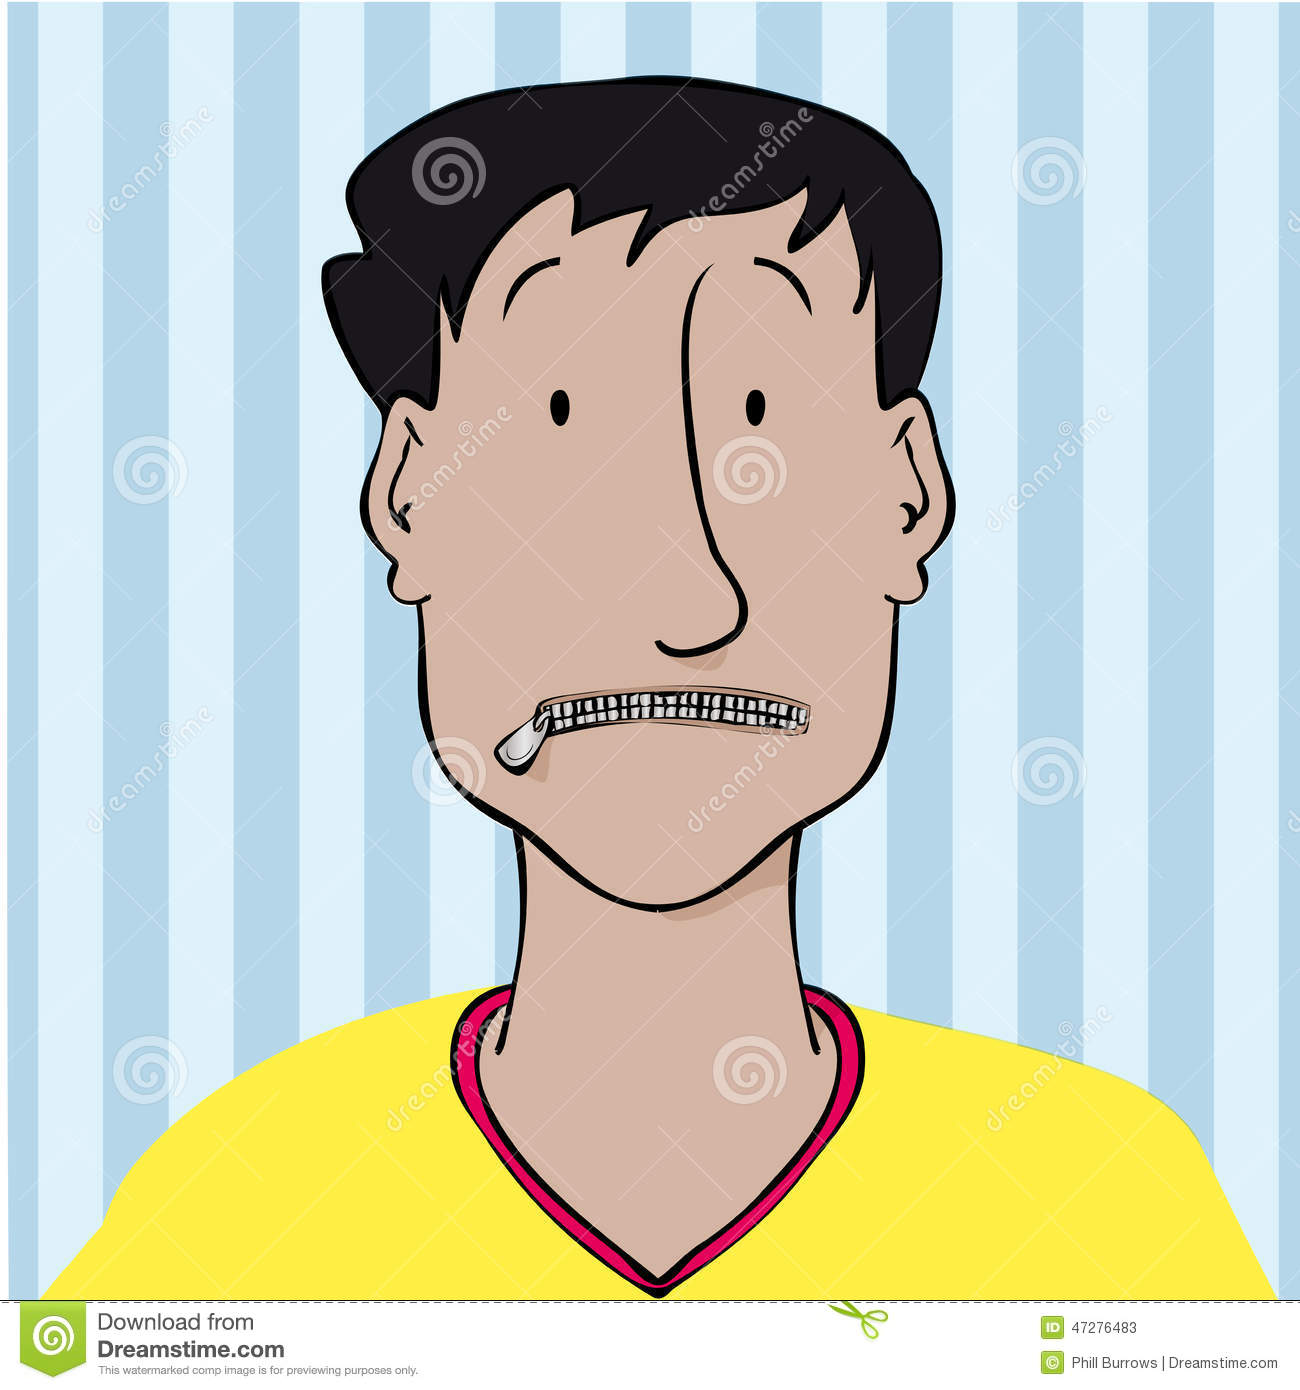 Zipped Mouth Stock Vector - Image: 47276483